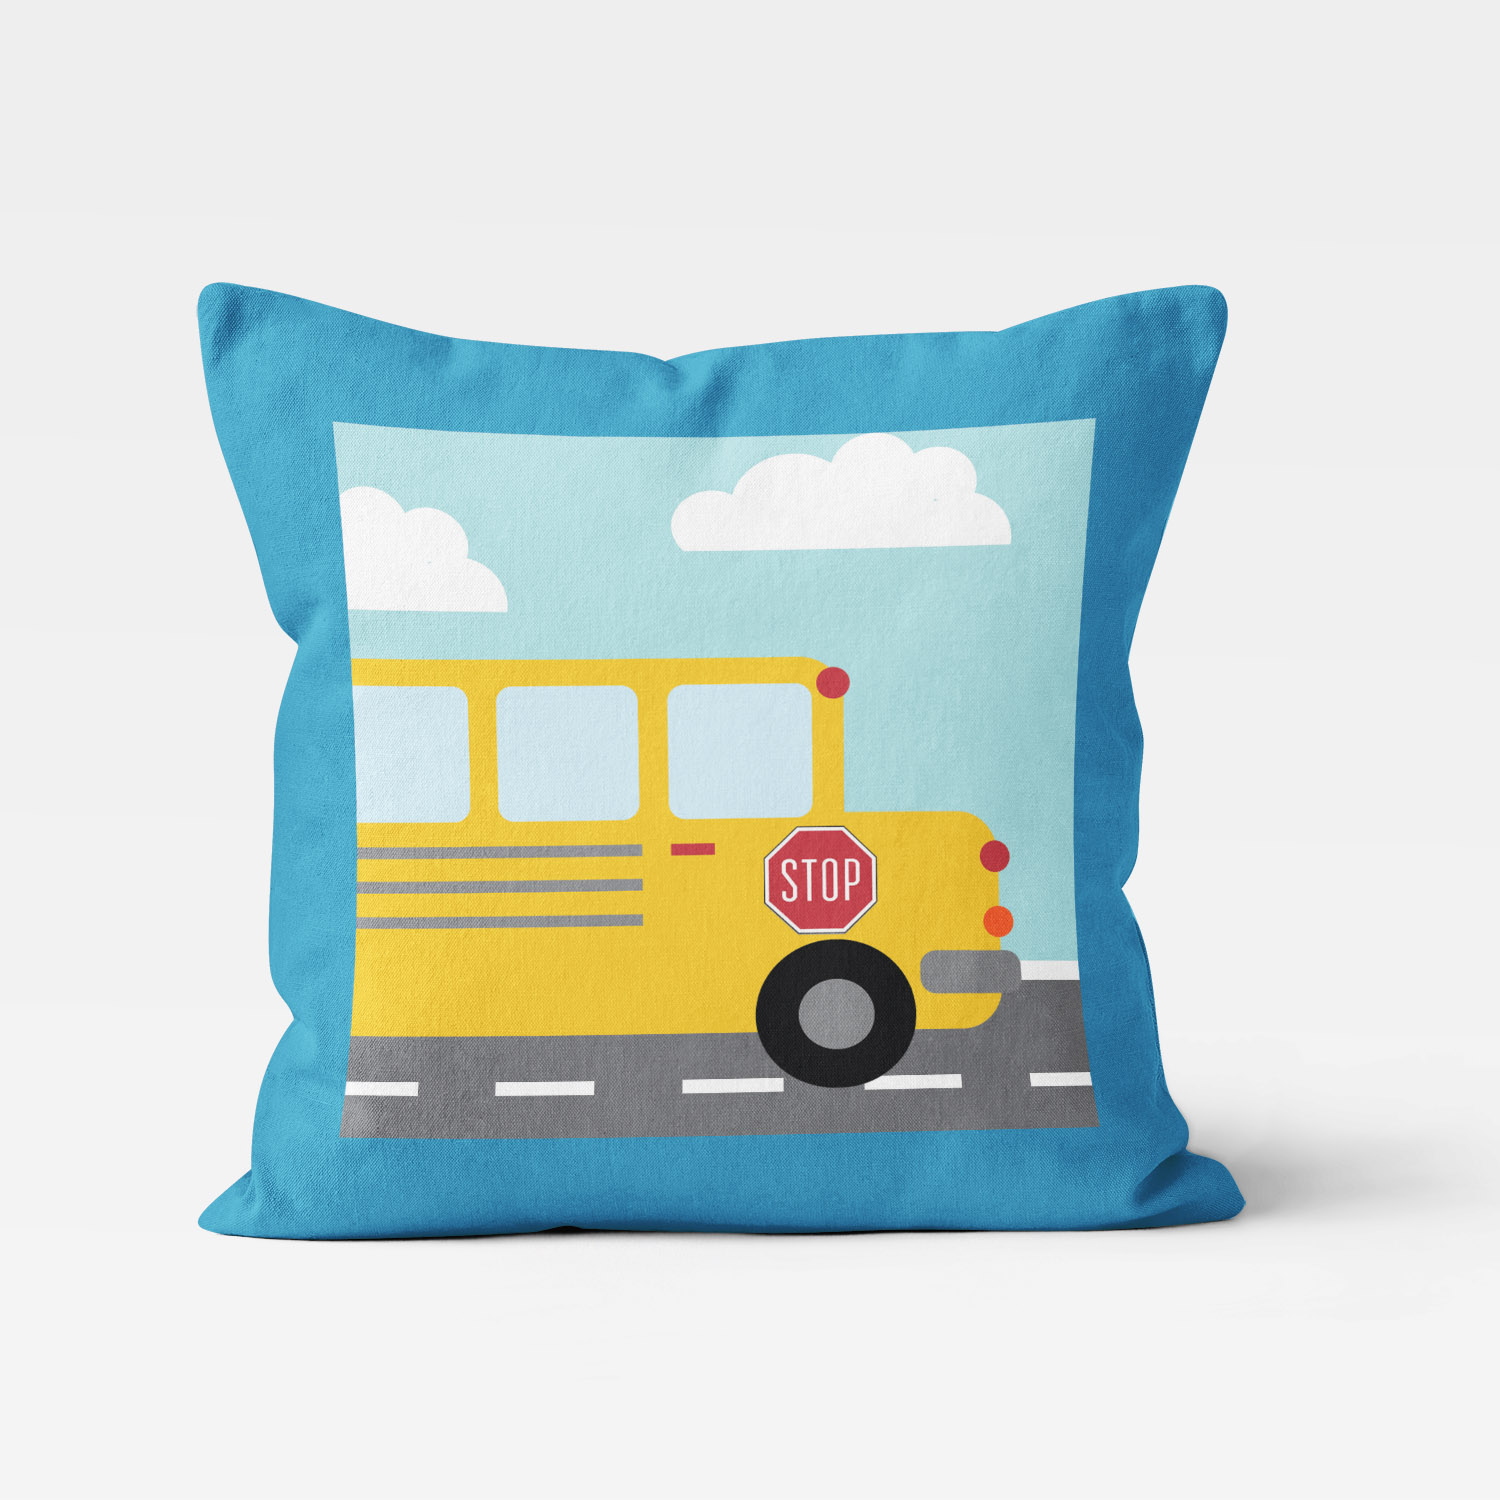 TTGV-PIL18X18-D TTGV-PIL18X18-A Things That Go Vroom Transportation Theme School Bus Boys Kids Accent Throw Pillow Room Decor Accessories by Pickleberry Kids